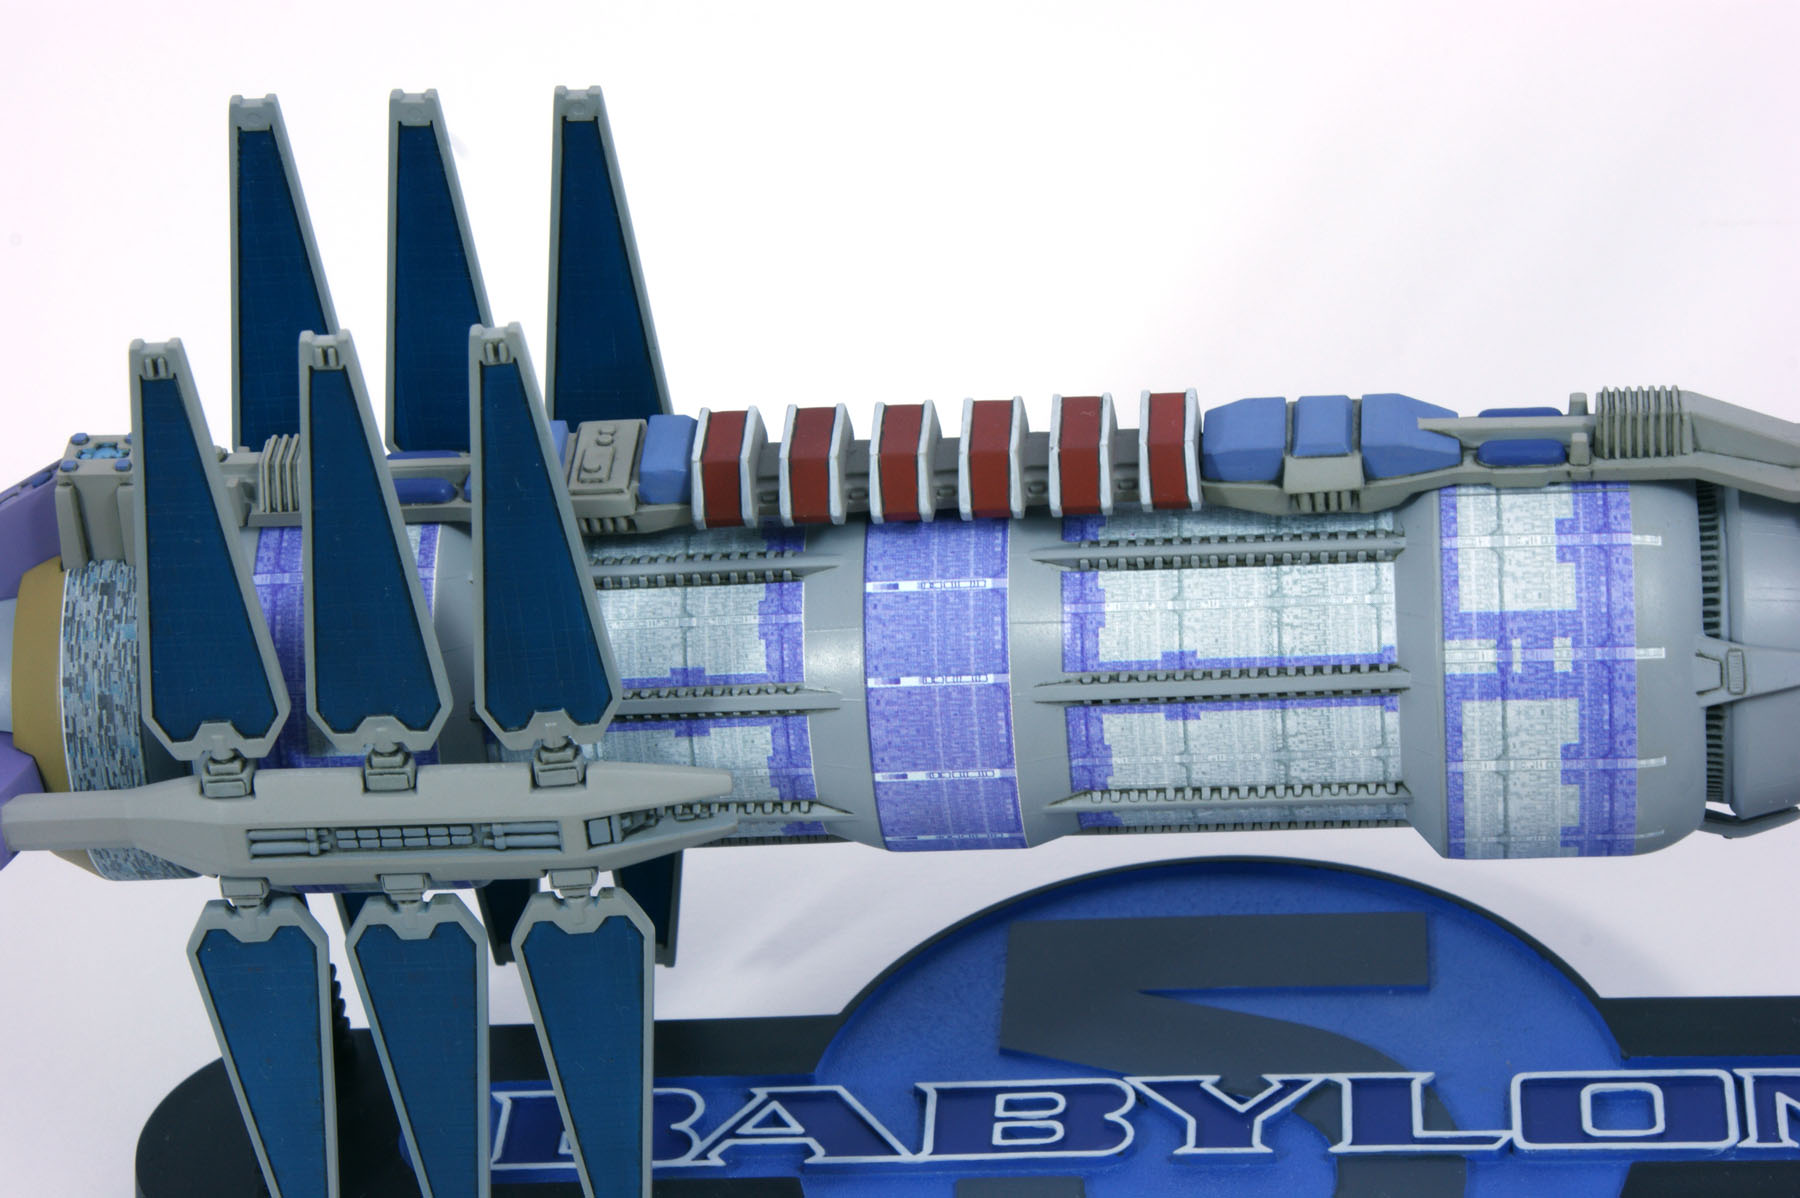 Babylon5SpaceStation06.JPG